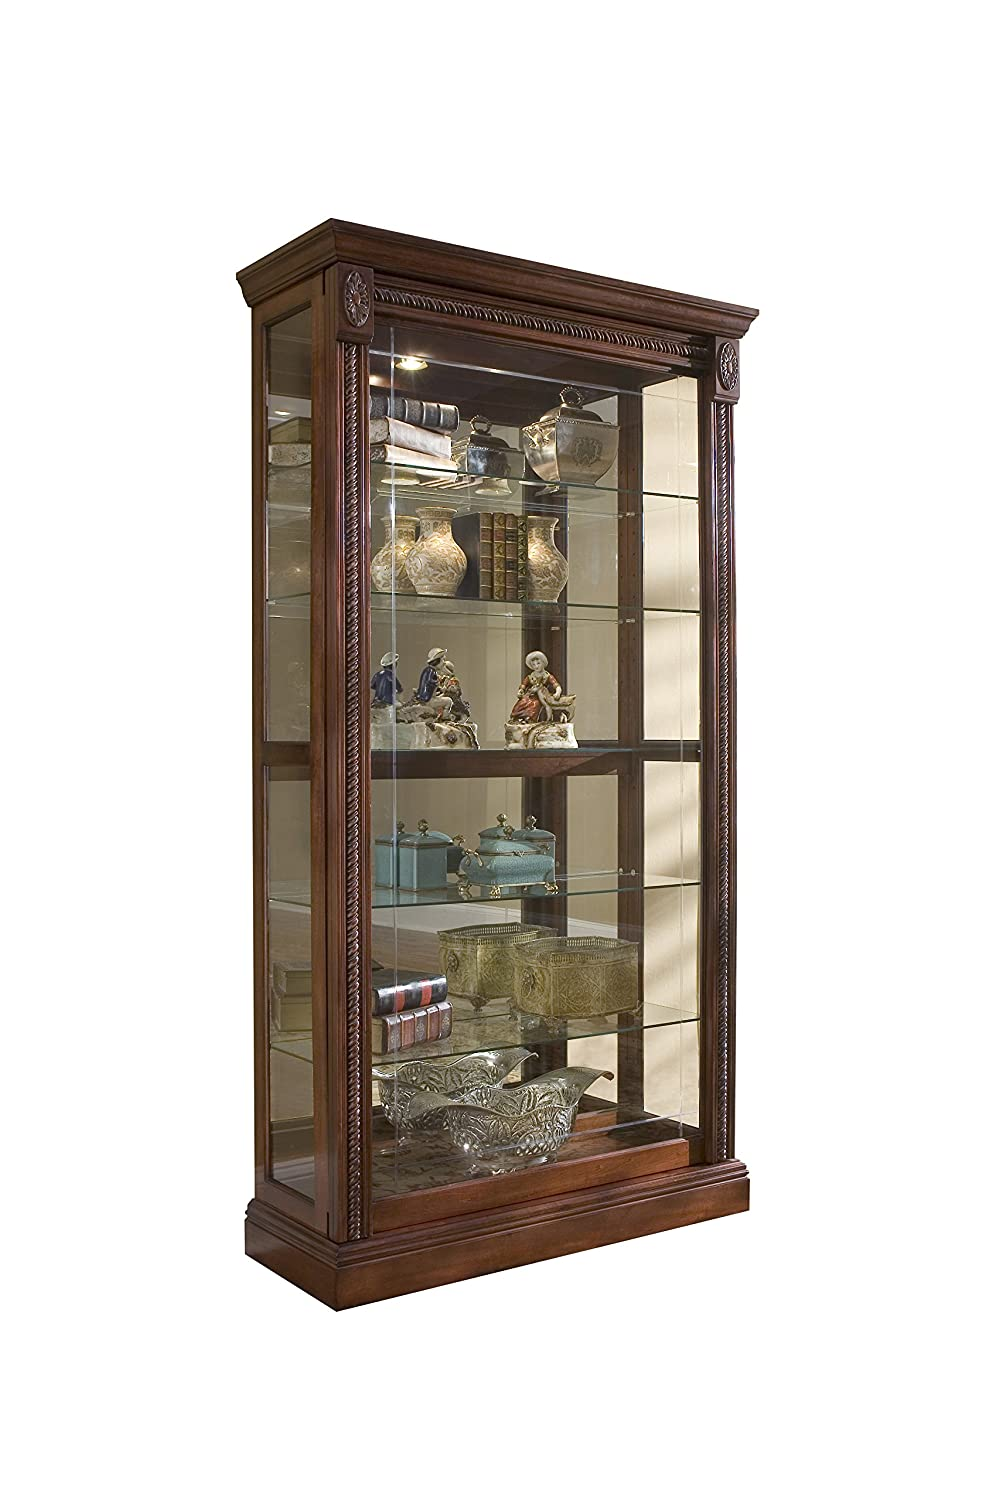 Amazon.com Pulaski Two Way Sliding Door Curio 43 by 17 by 80-Inch Medallion Cherry Finish Brown Kitchen u0026 Dining  sc 1 st  Amazon.com & Amazon.com: Pulaski Two Way Sliding Door Curio 43 by 17 by 80-Inch ...